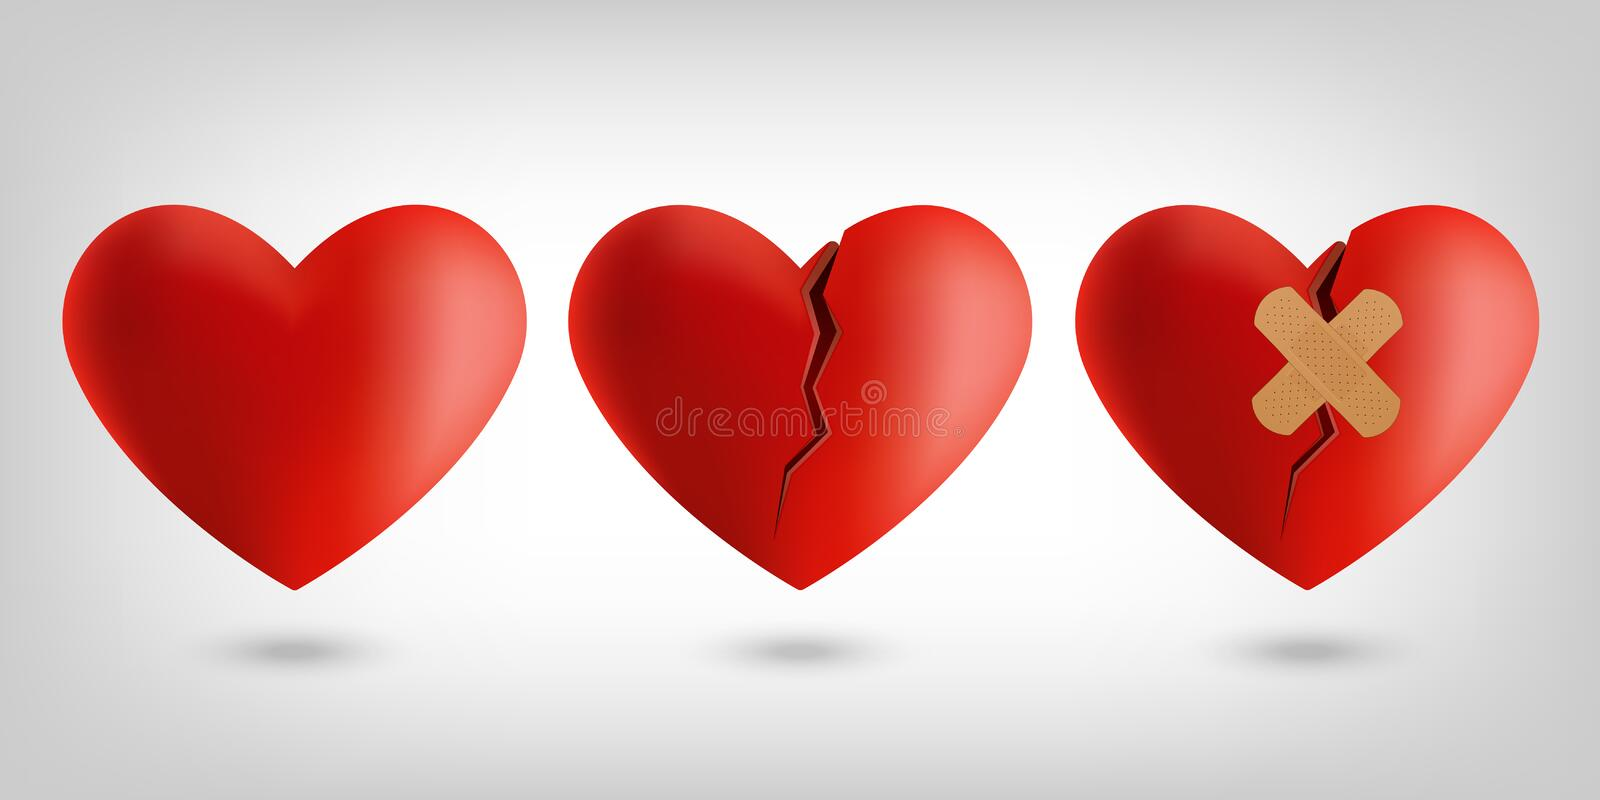 Heart icons. Illustration of healthy , broken and healing heart symbols vector illustration